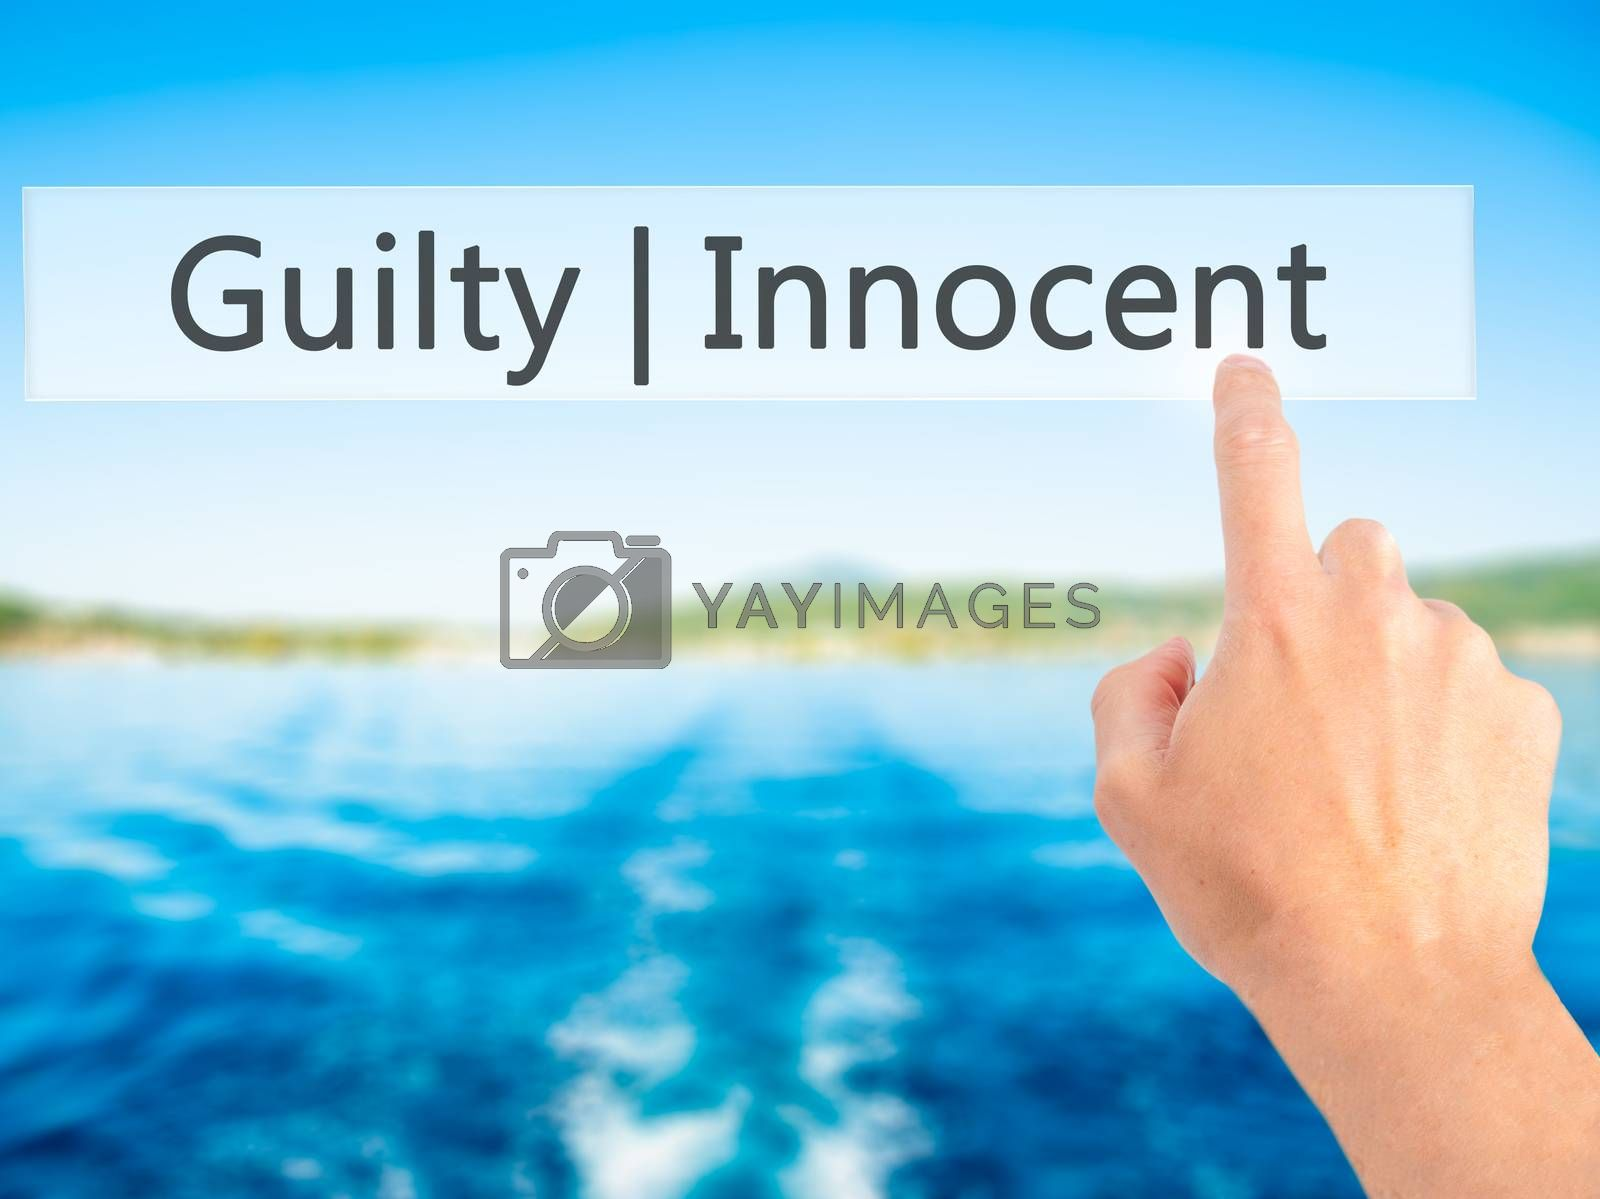 Guilty Innocent - Hand pressing a button on blurred background c by netsay.net